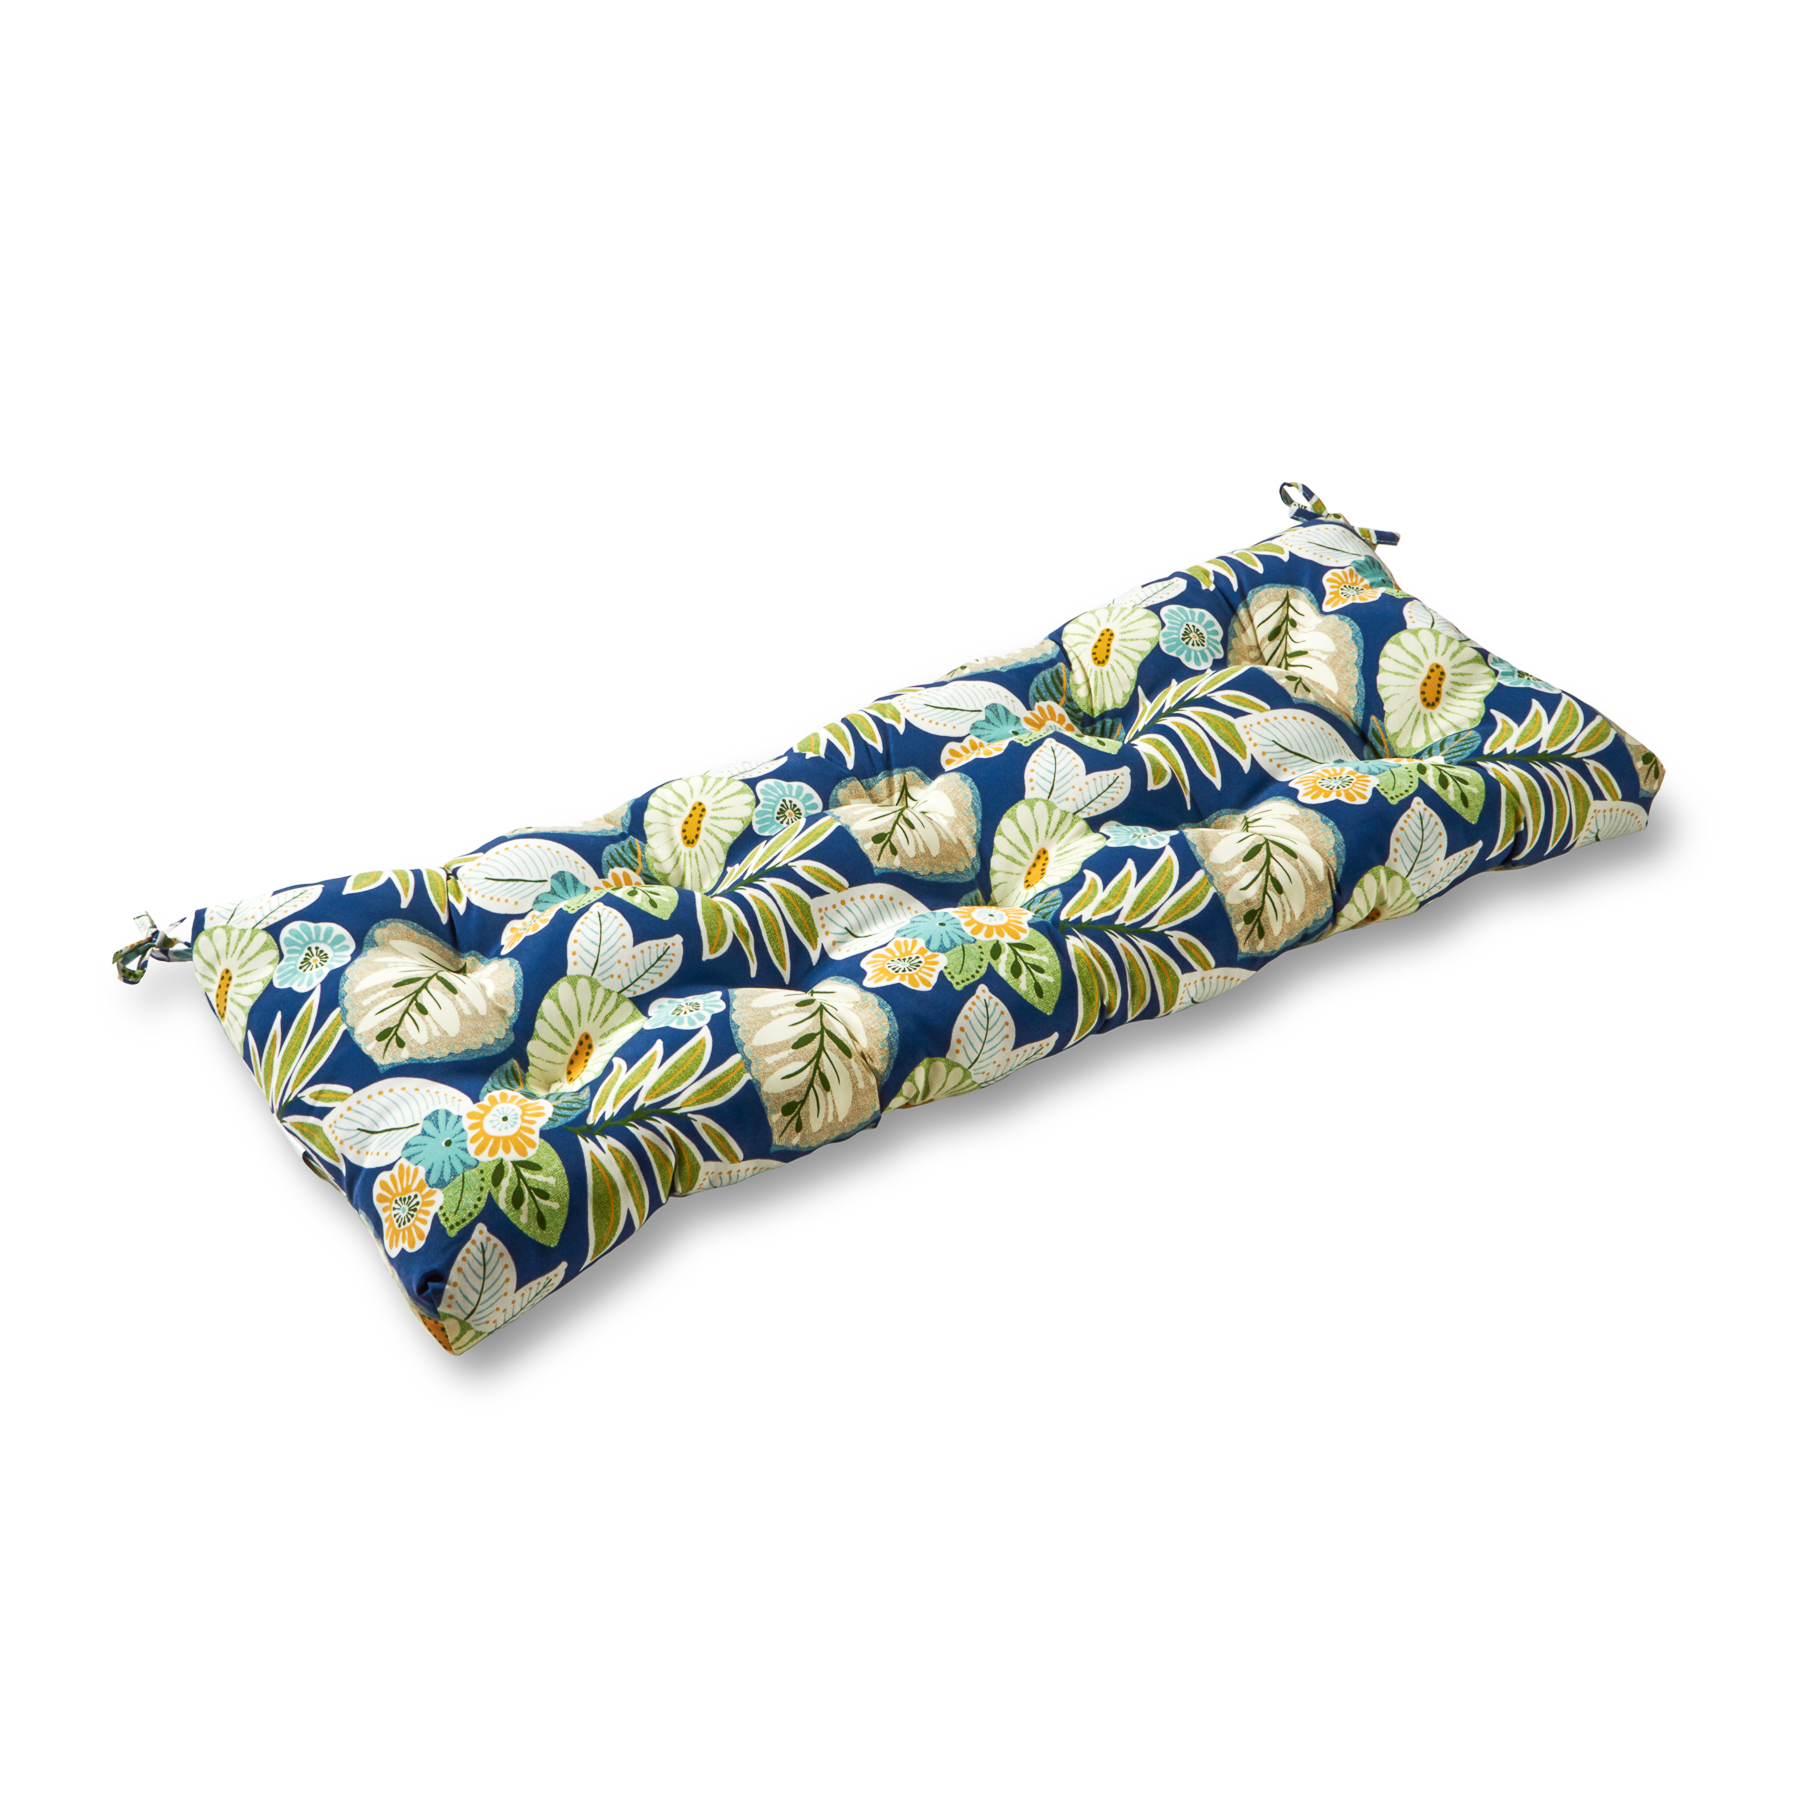 Marlow Floral 44 x 17 in. Outdoor Swing/Bench Cushion